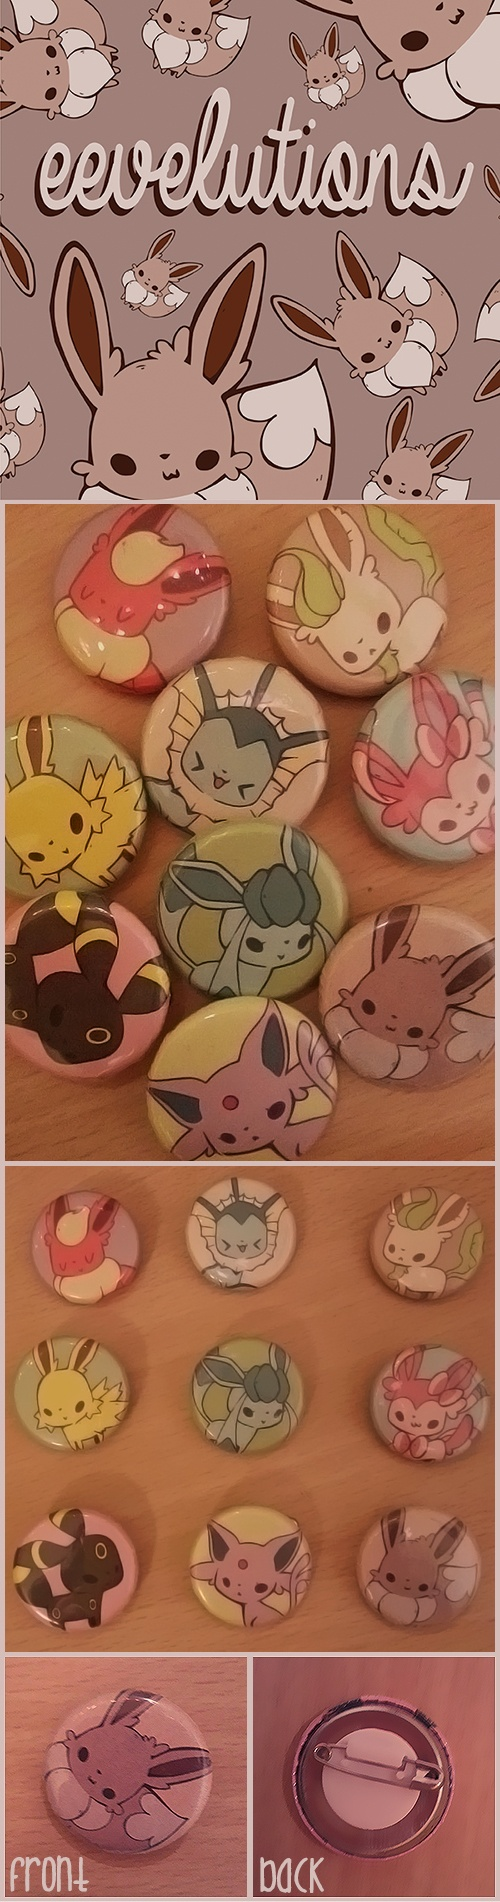 1 badge: 2,00€ (2,60 USD)  2-3 badges: 1,90€ each (2,50 USD)  4 badges or more: 1,80€ each (2,40 USD)  whole set: 15,00€ (20 USD)